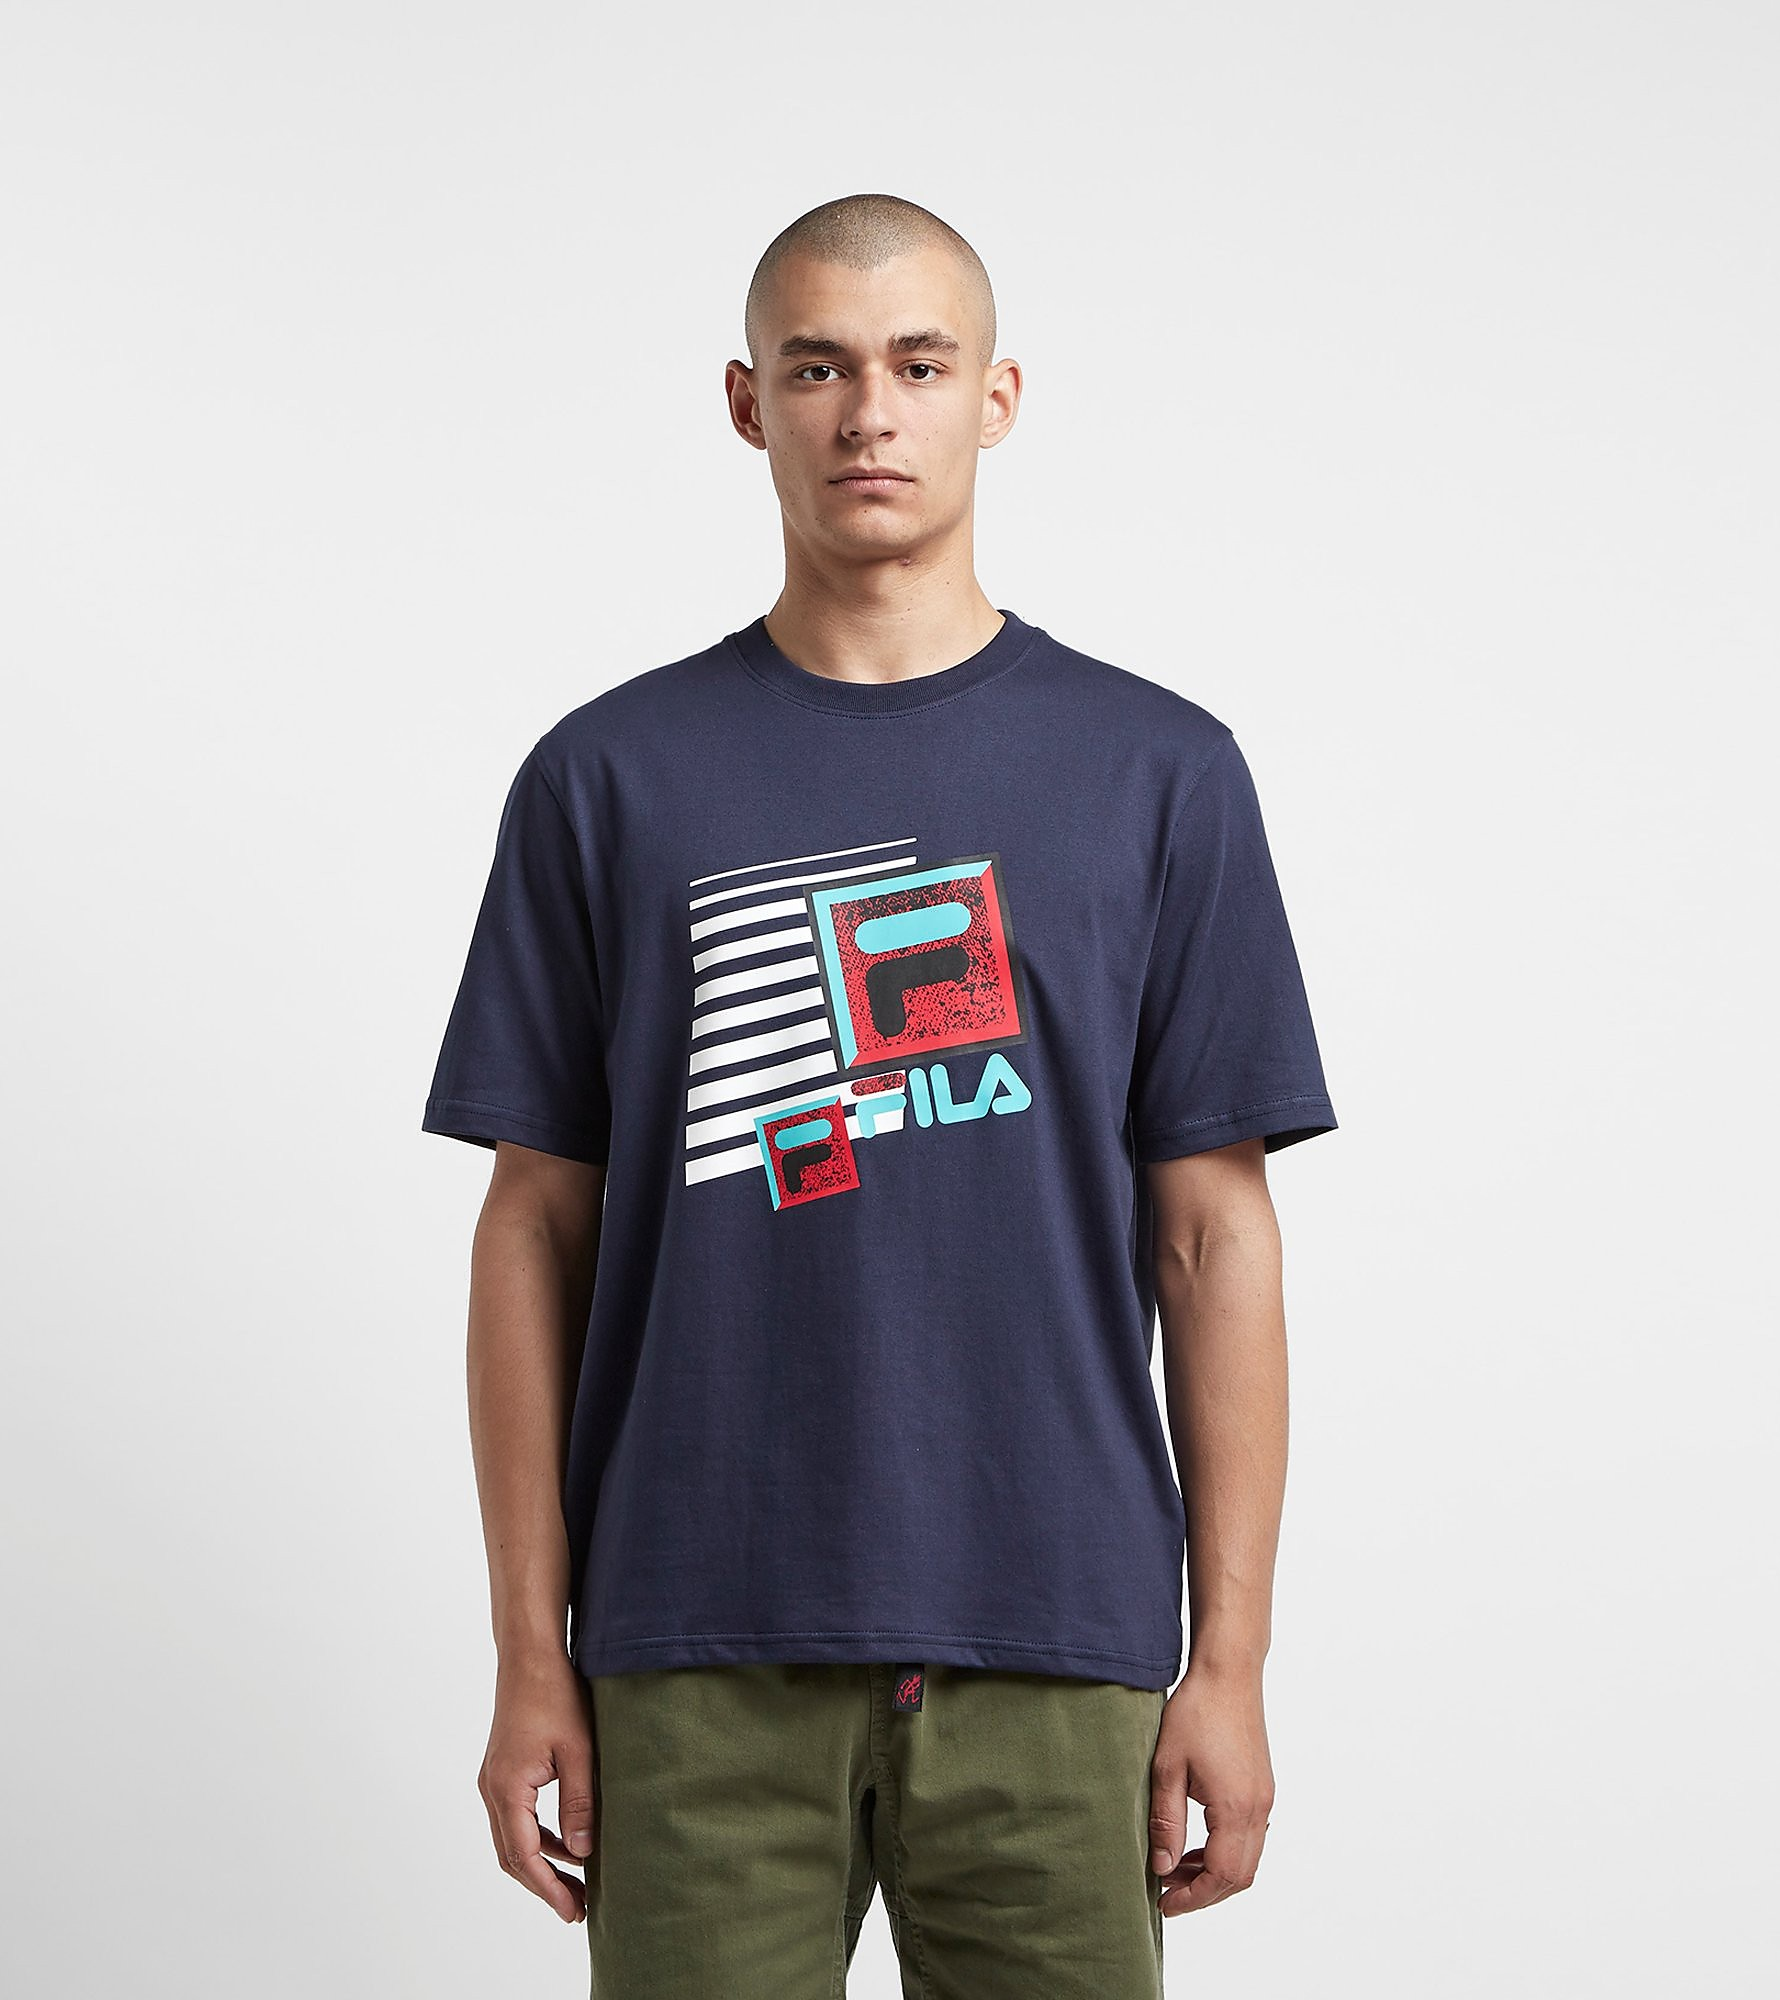 Fila Ace T-Shirt Navy